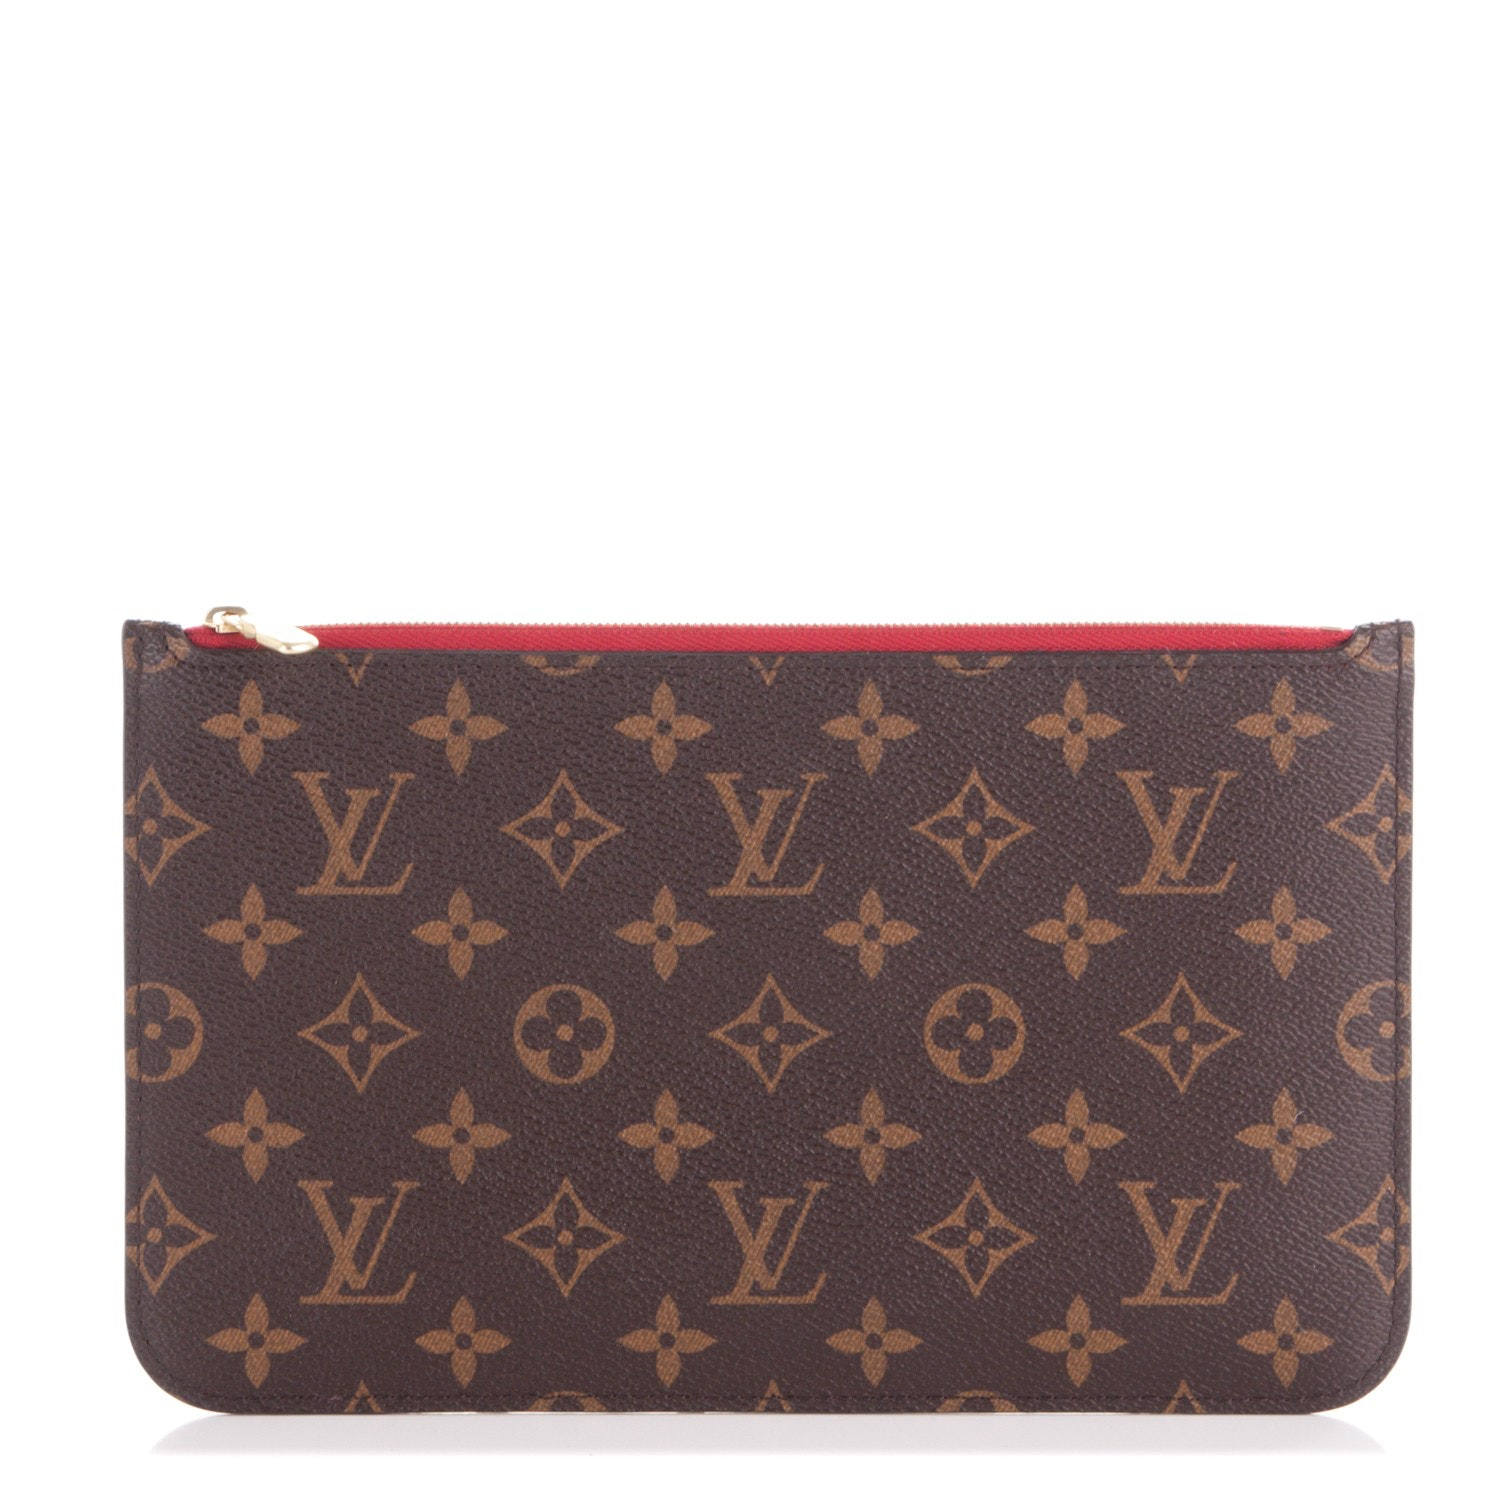 Louis Vuitton Neverfull Pochette Monogram Brown